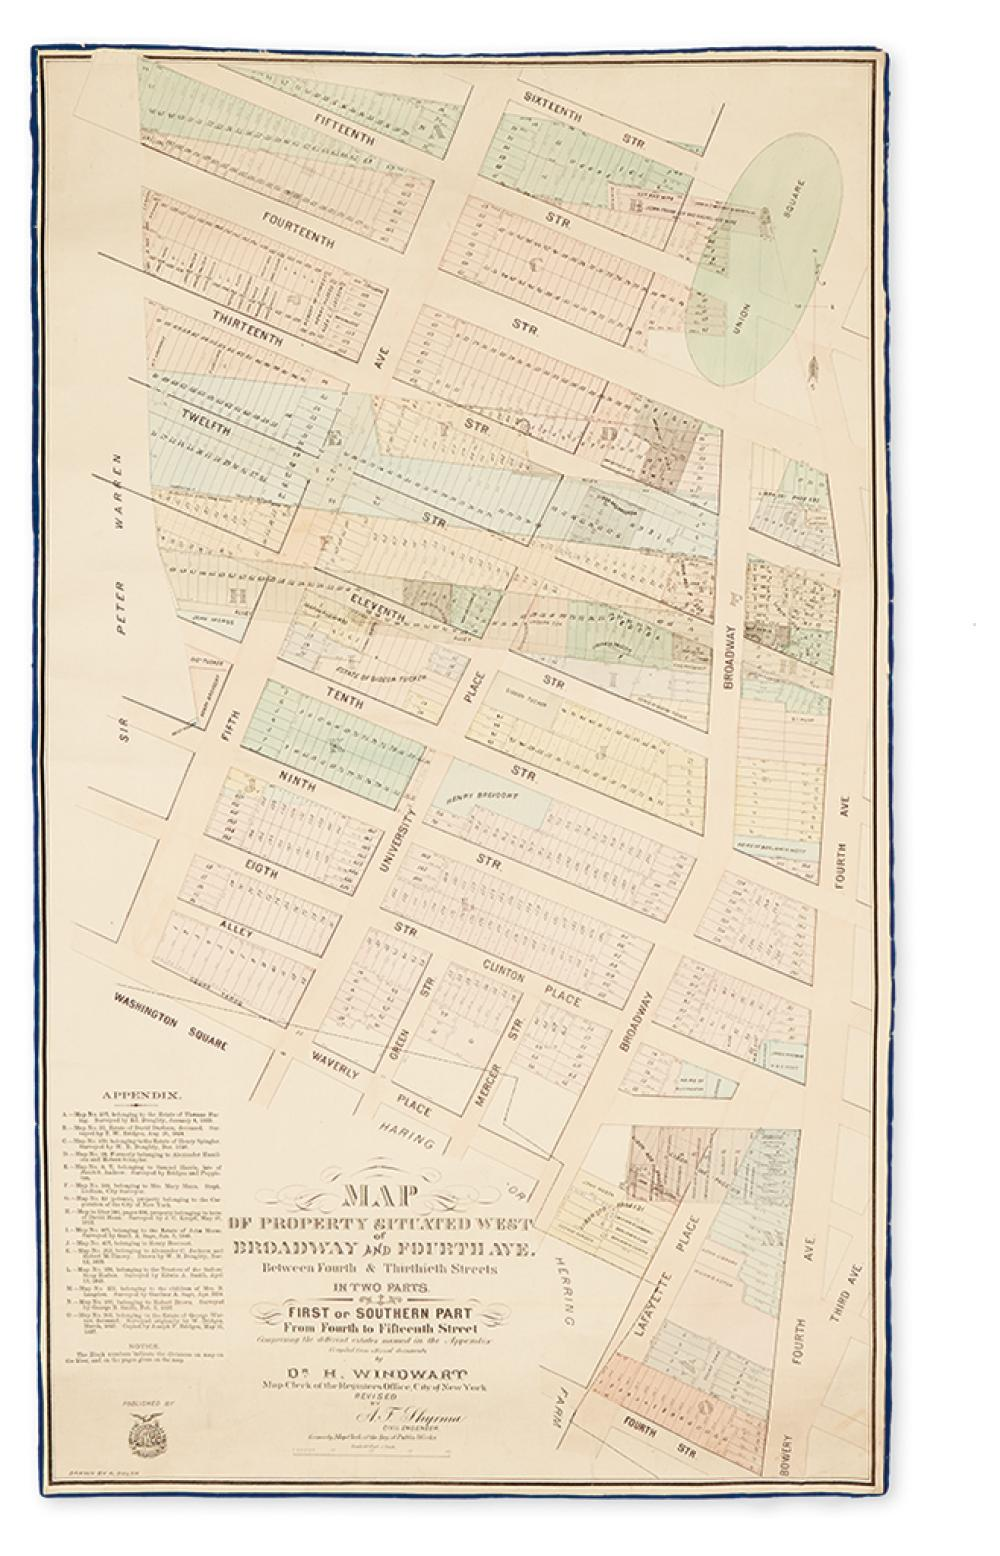 (NEW YORK CITY.) Windwart, Dr. H. Map of Property Situated West of Broadway and Fourth Ave. Between Fourth & Thirtieth Streets.